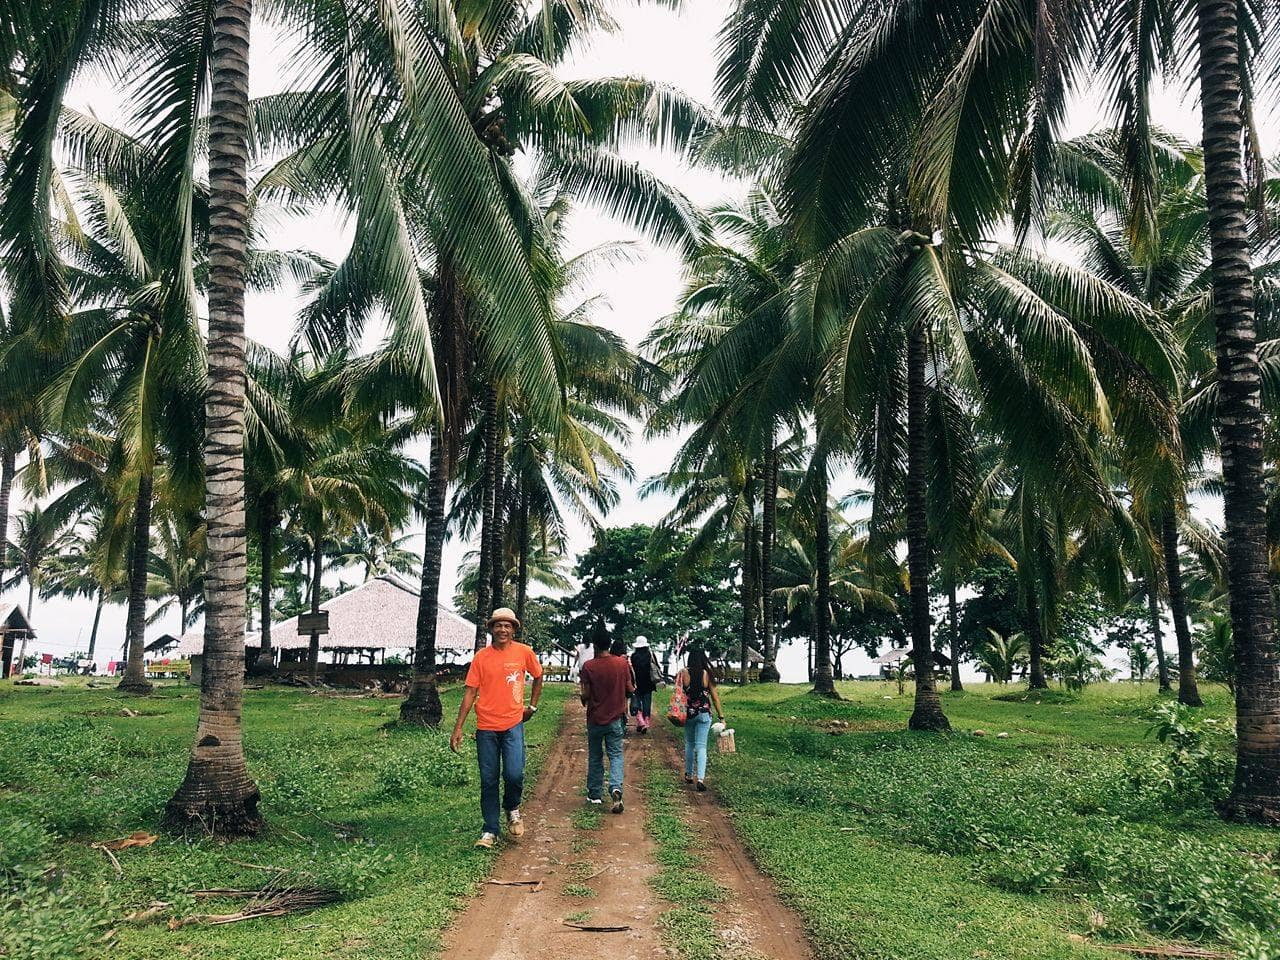 Filipinos walking, surrounded by nature and coconut trees.